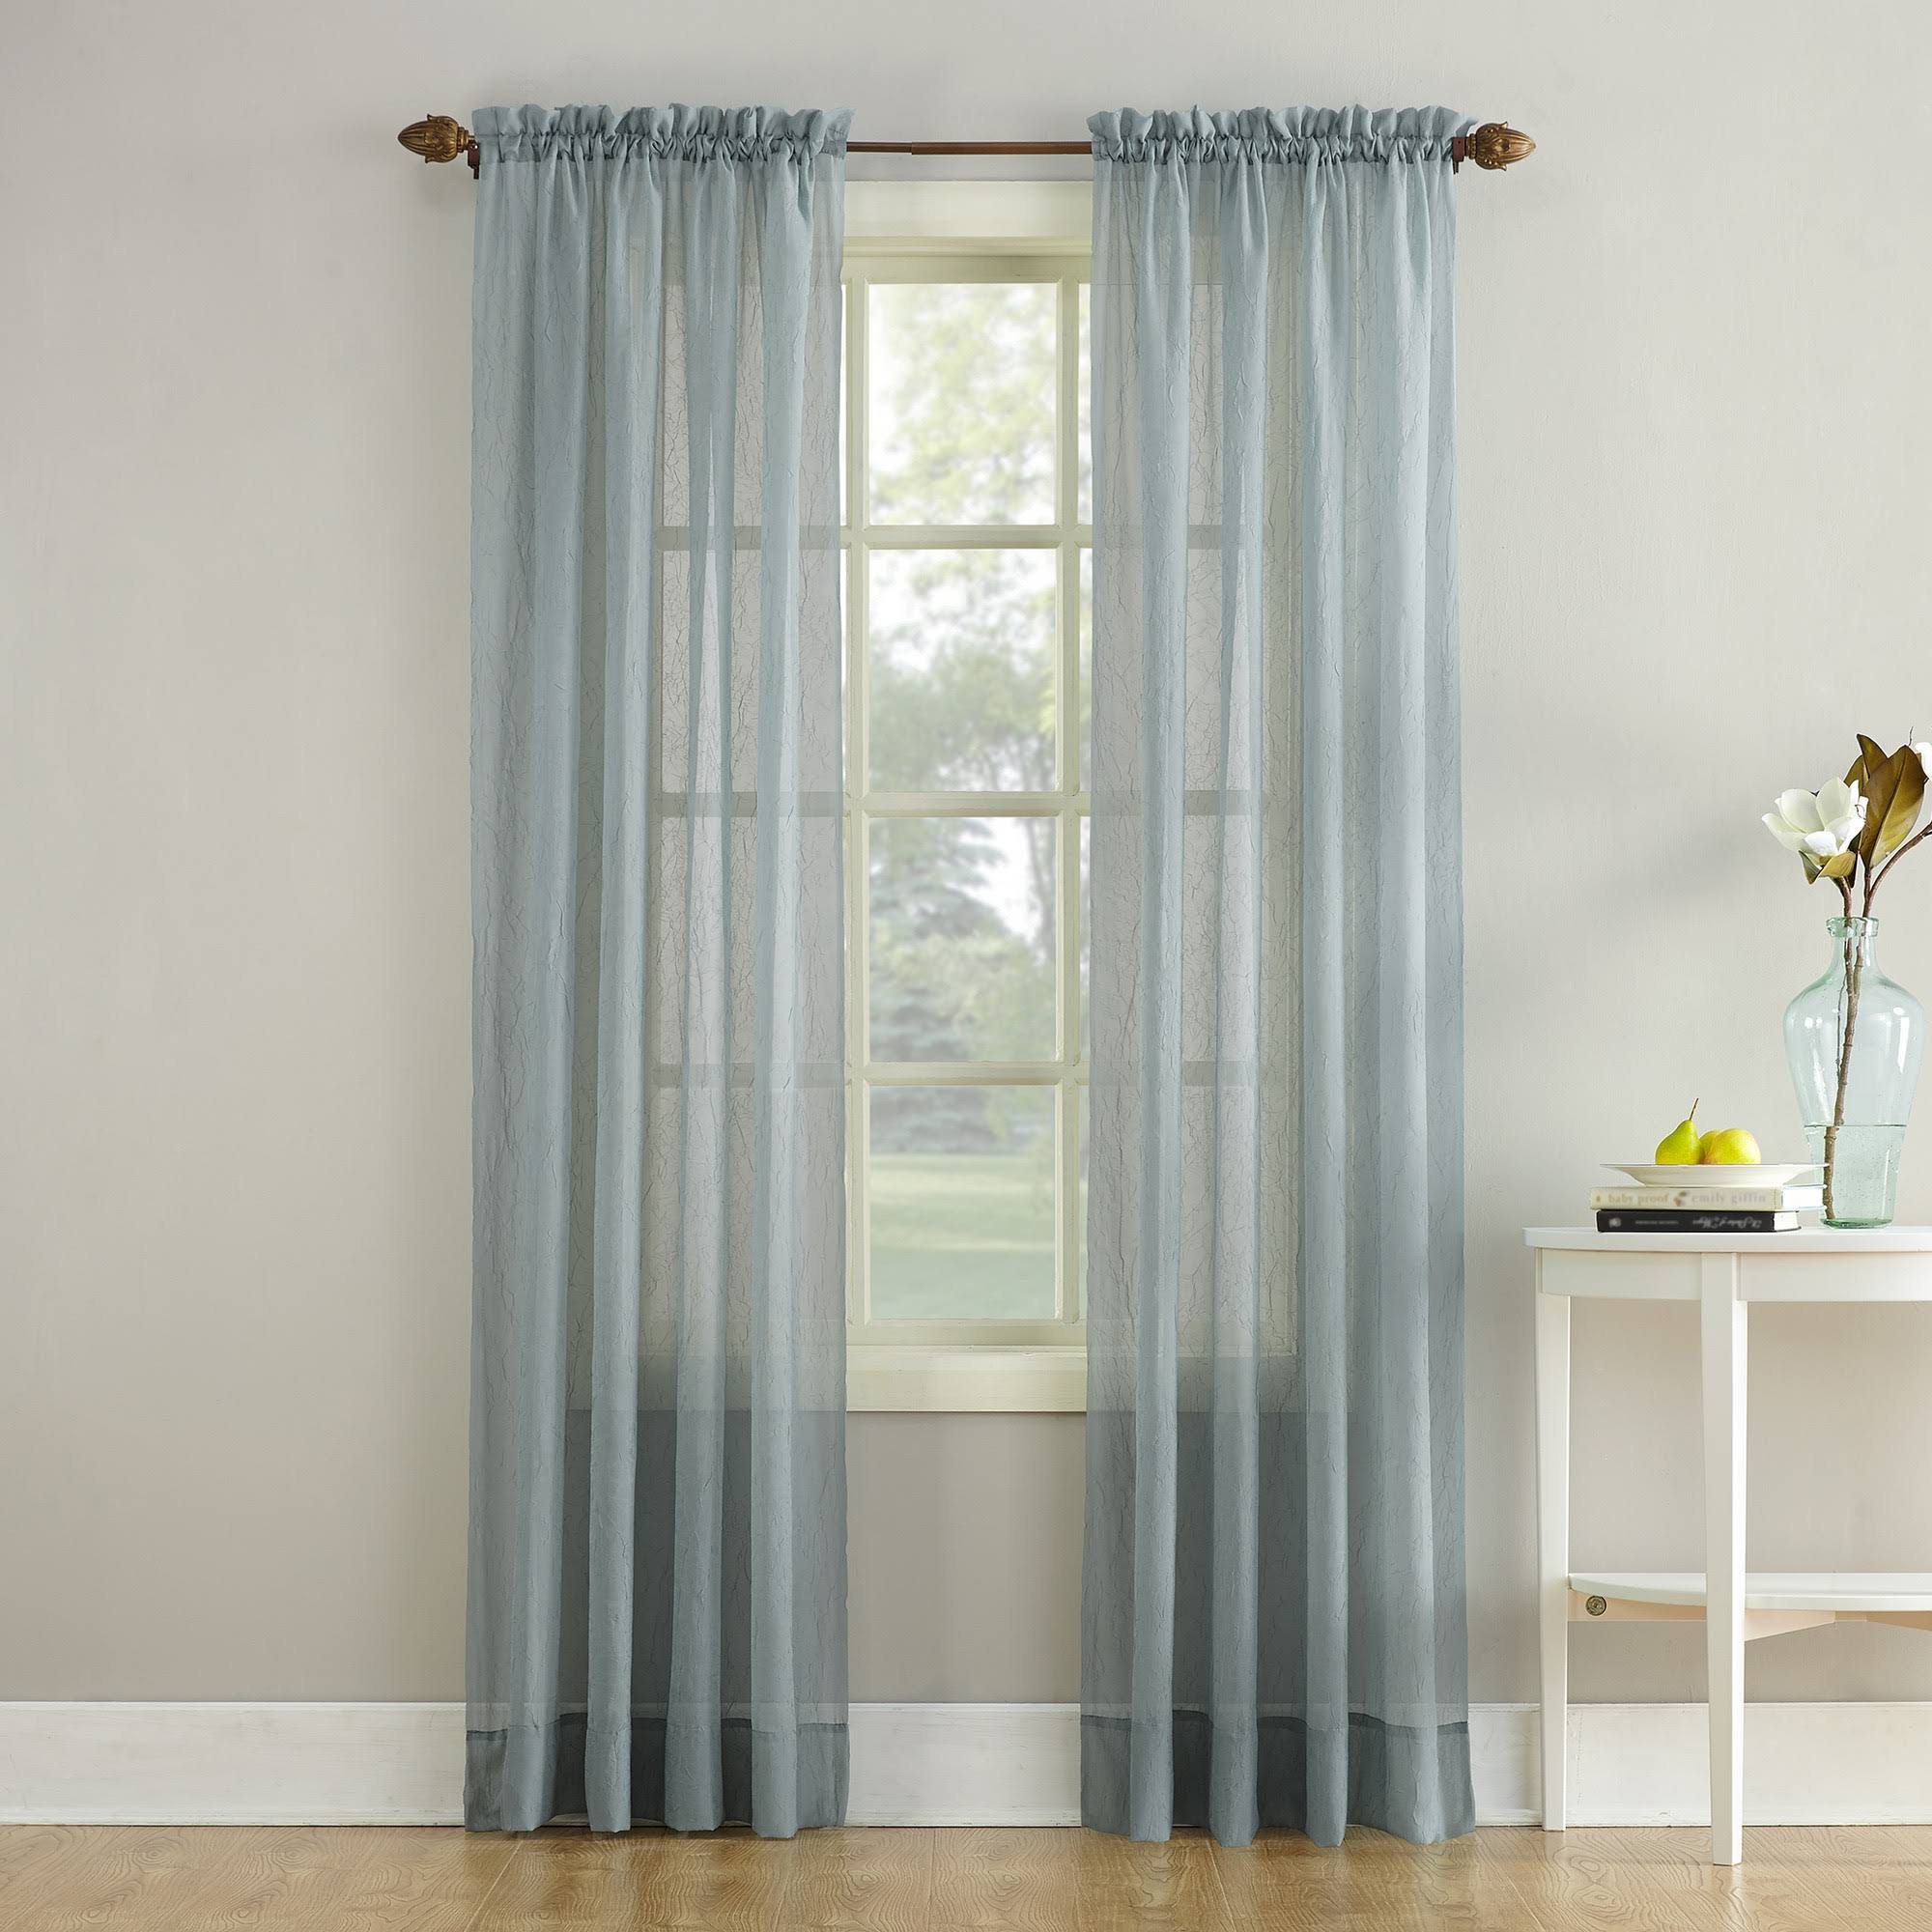 No. 918 Erica Crushed Sheer Voile Rod Pocket Curtain Panel, Gray